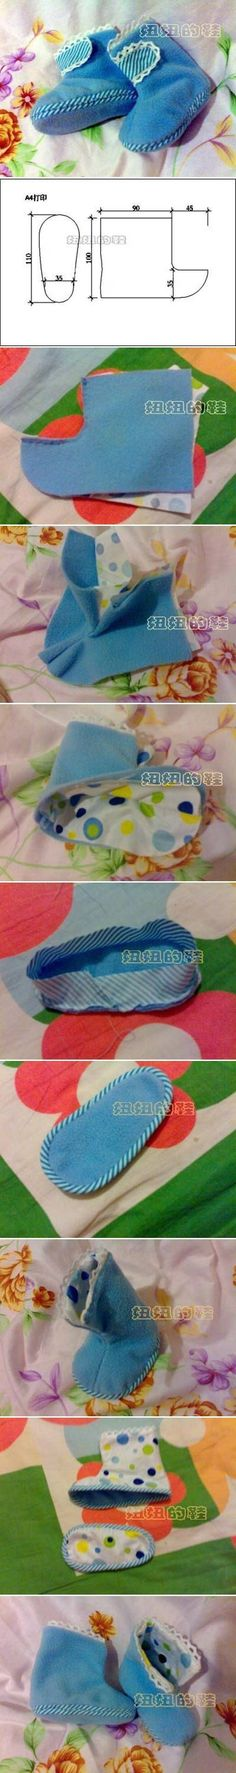 DIY Baby Boot DIY Projects | UsefulDIY.com Follow Us on Facebook ==> http://www.facebook.com/UsefulDiy